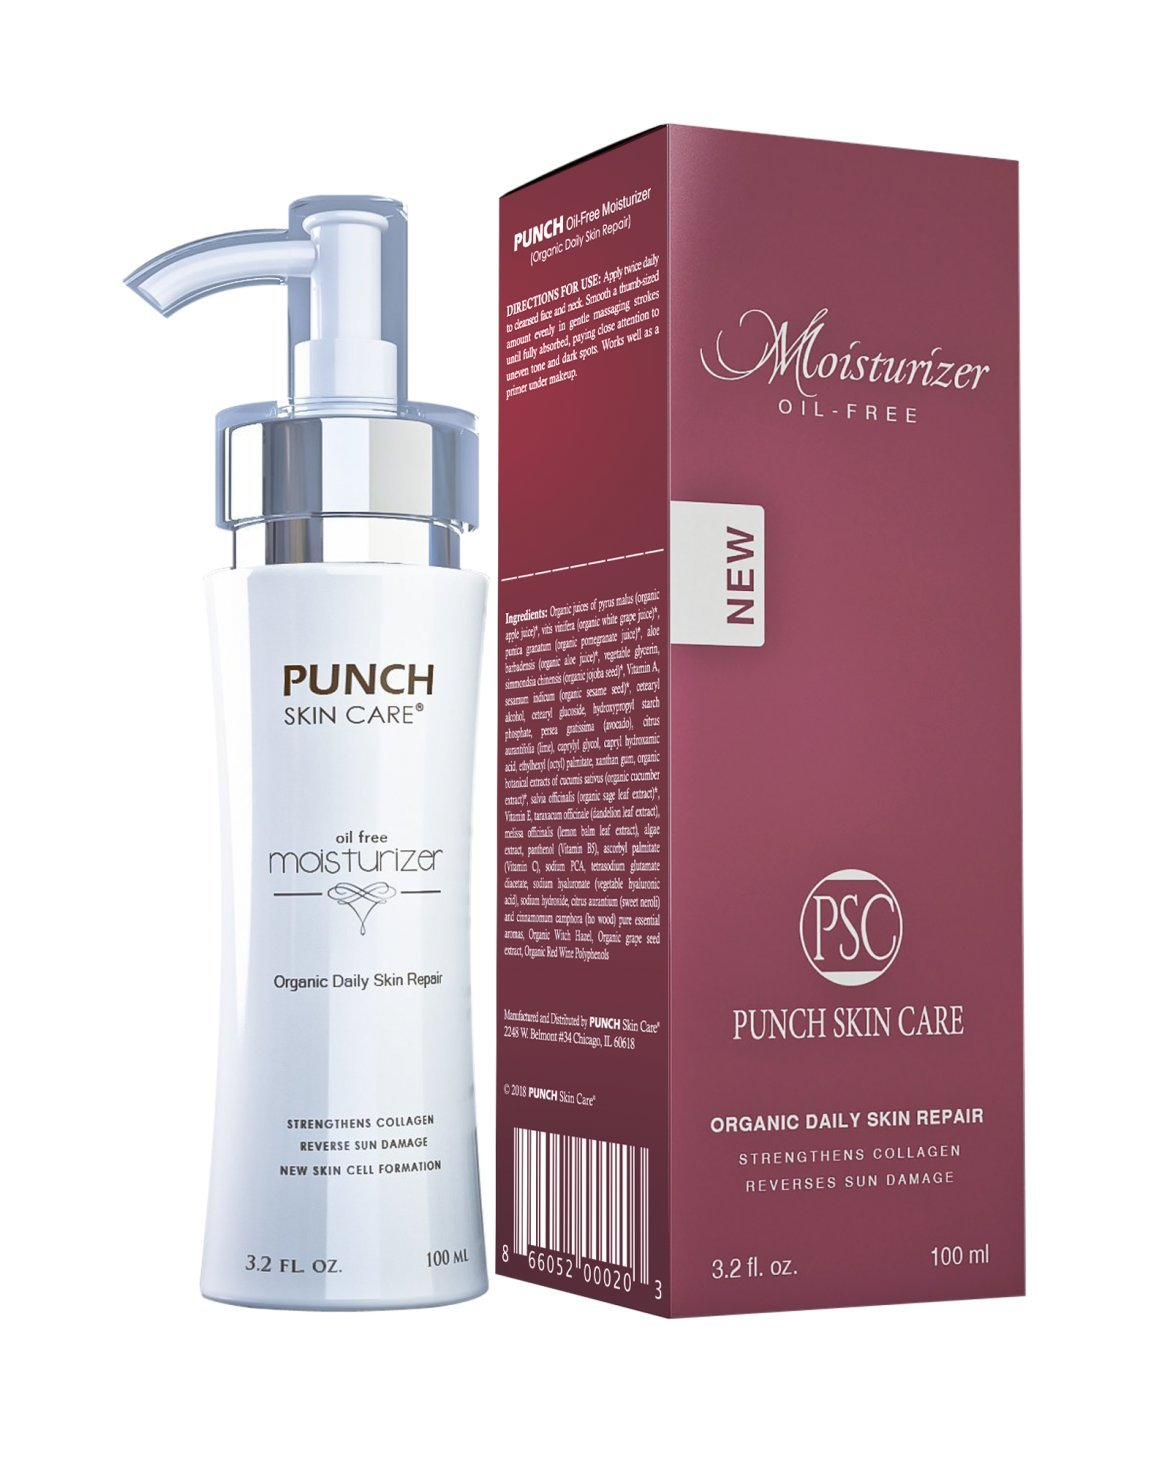 Upgrade Your Skin with Punch Skin Care Premium Daily Skin Repair Facial Moisturizer | All Natural Oil-Free Facial Moisturizing, (3.2 fl. oz)